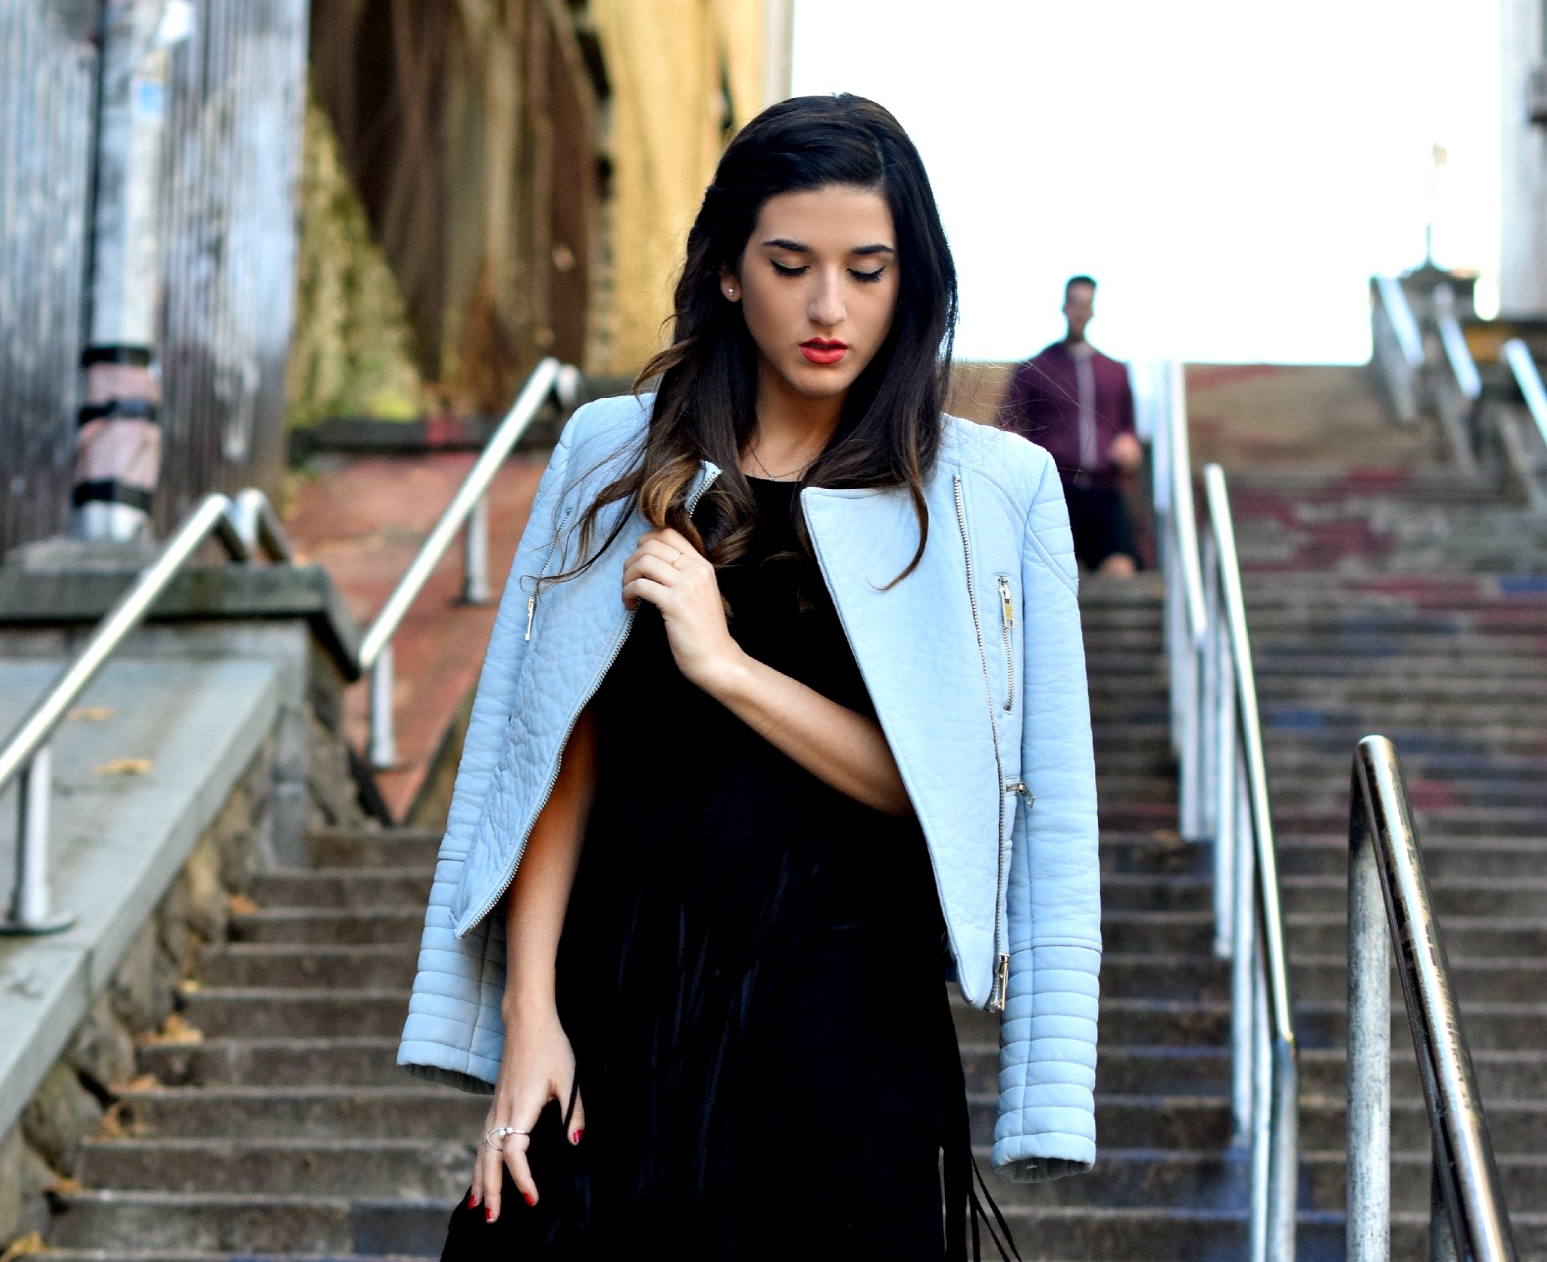 Black Fringe Dress Trèscool Louboutins & Love Fashion Blog Esther Santer NYC Street Style Blogger Baby Blue Leather Jacket Zara Hair Girl Model Photoshoot Booties Nordstrom Outfit OOTD Red Nail Polish Pretty Trendy  Fall Look Shoes Winter Shop Inspo.jpg